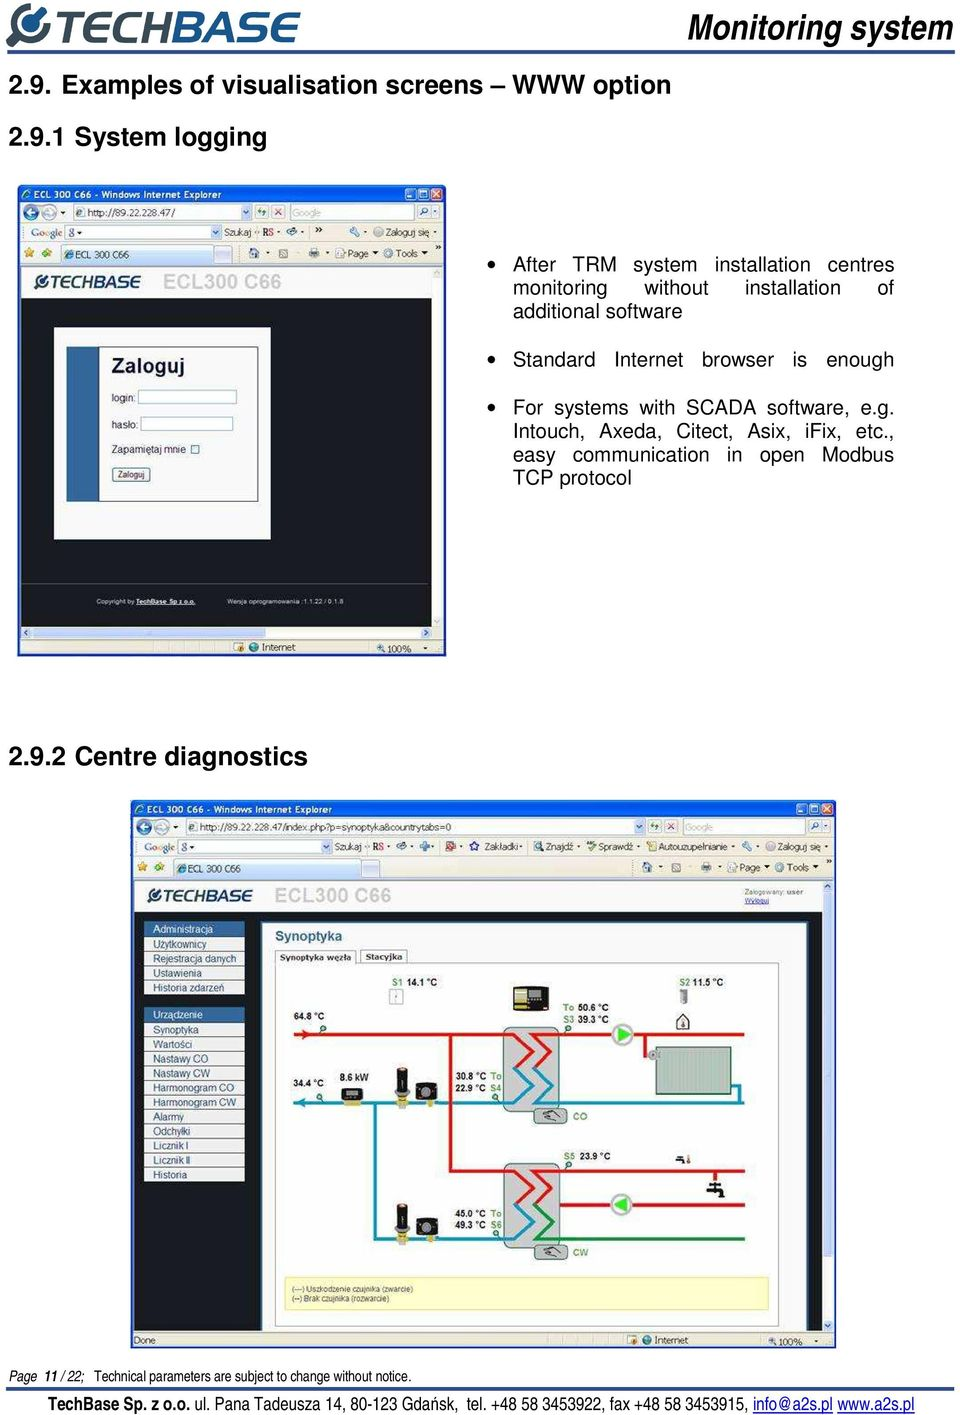 systems with SCADA software, e.g. Intouch, Axeda, Citect, Asix, ifix, etc.